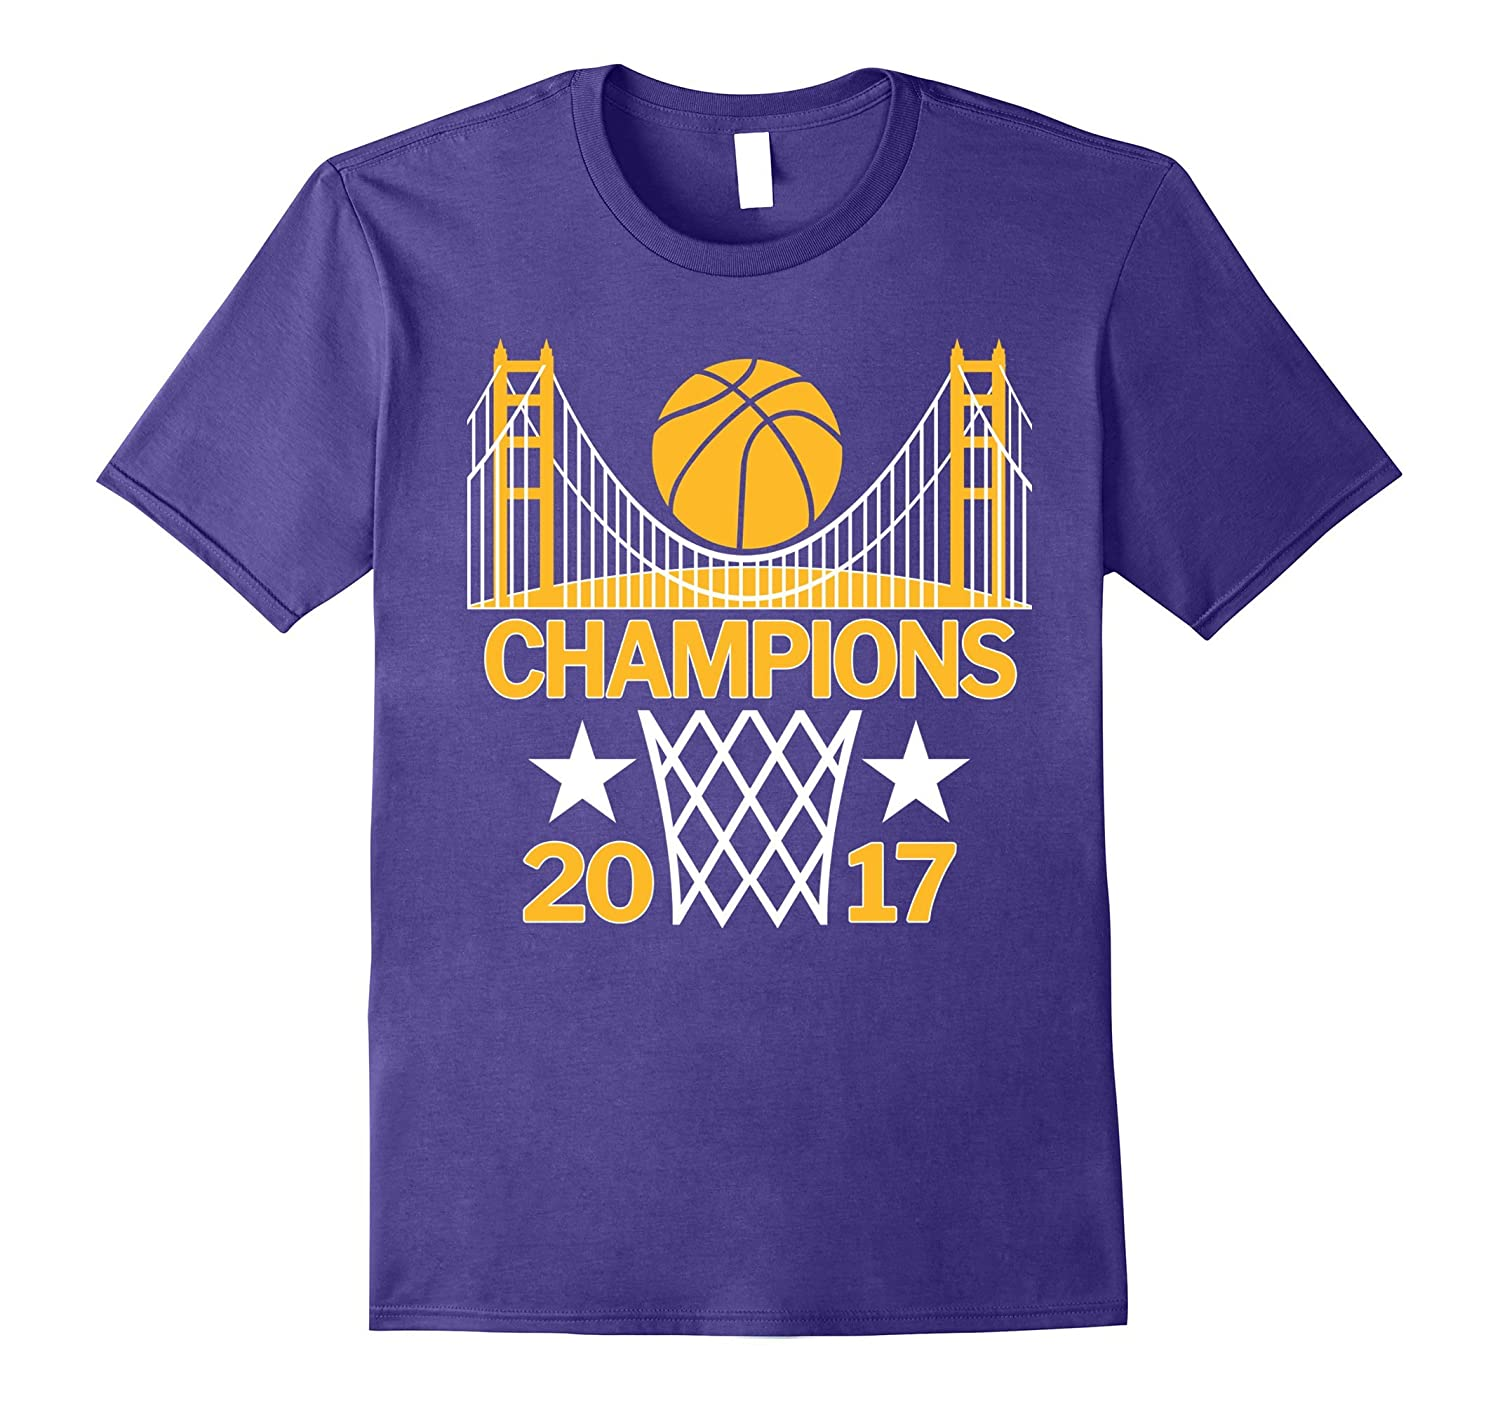 Basketball Champions with Golden Gate Bridge 2017 T-Shirt-PL